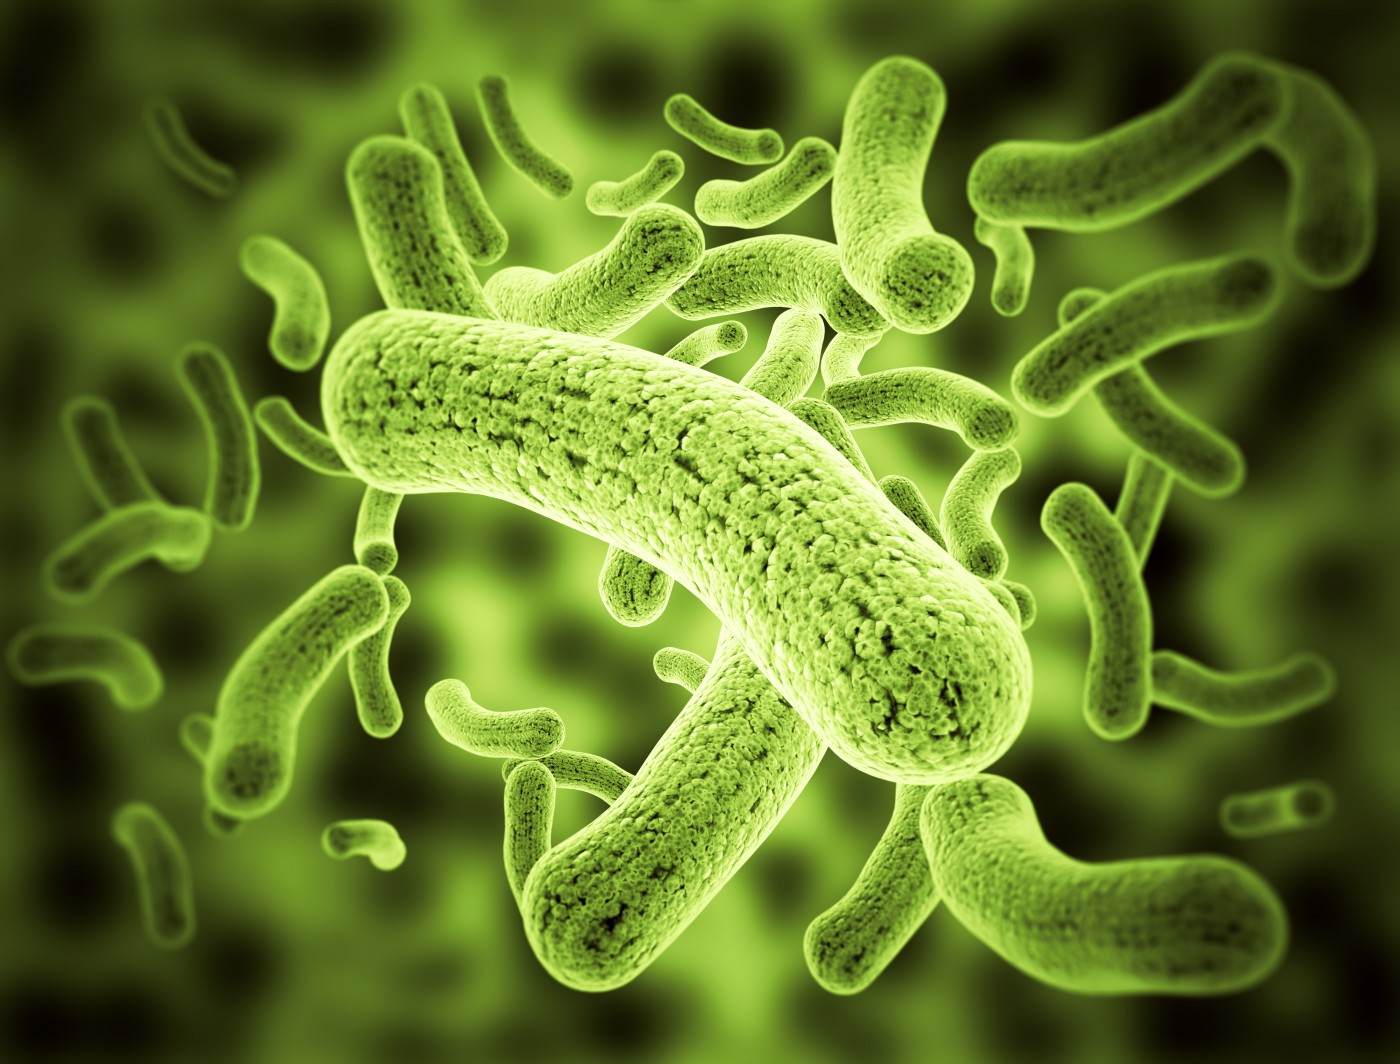 Review Highlights Link Between Non-Cystic Fibrosis Bronchiectasis and Nontuberculous Mycobacteria